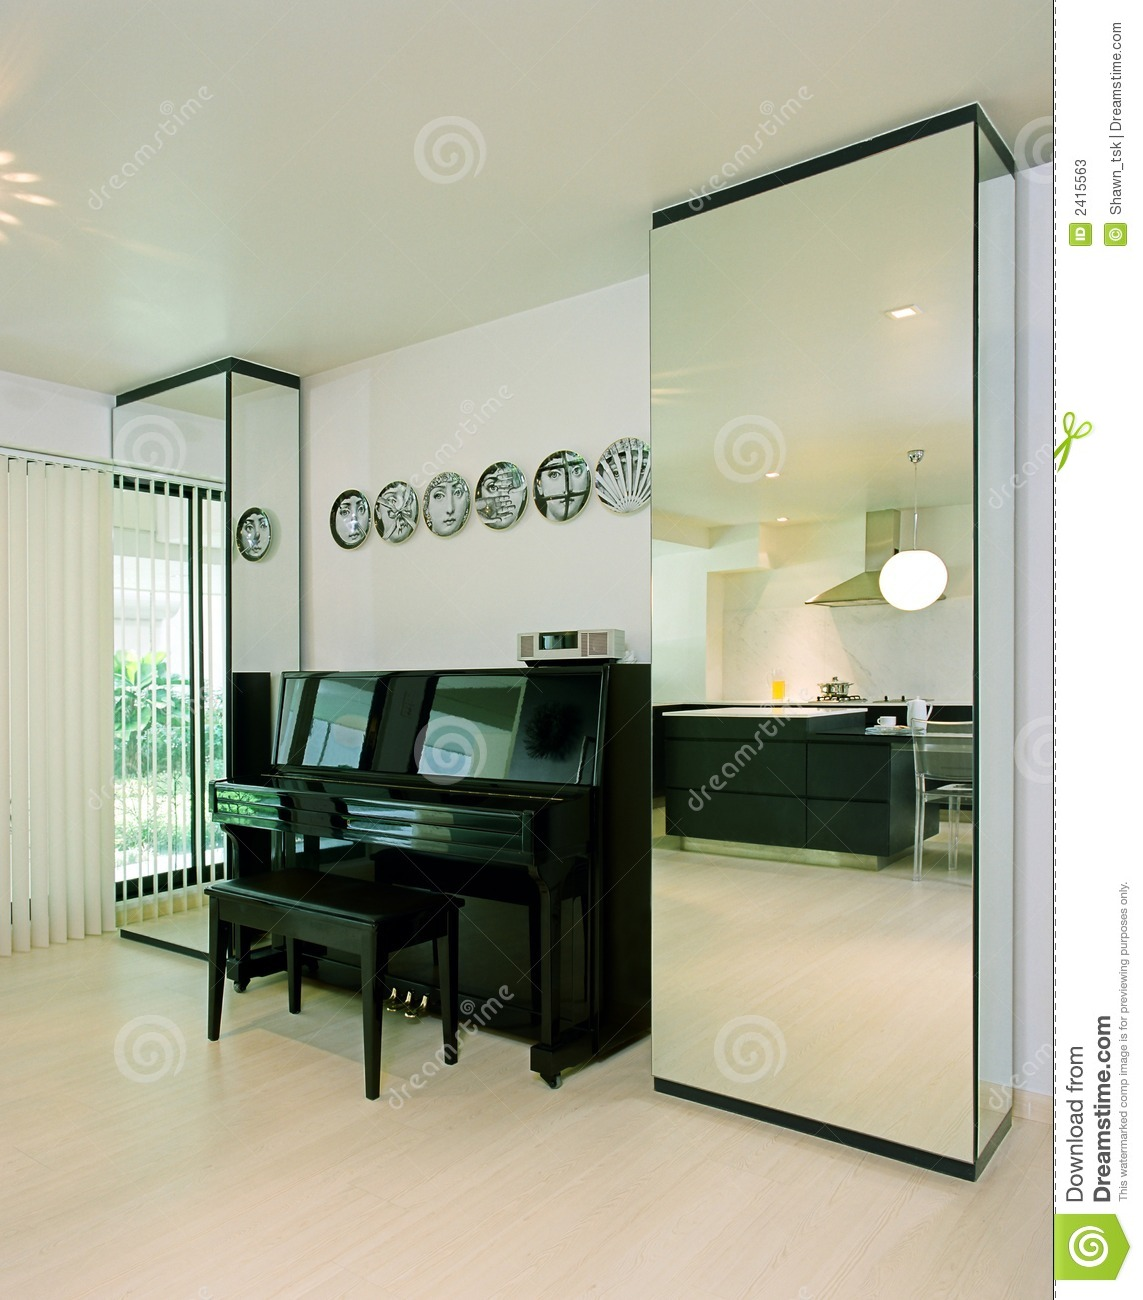 Interior Design  Piano Stock Photos  Image: 2415563 - Bedroom Decorating Themes